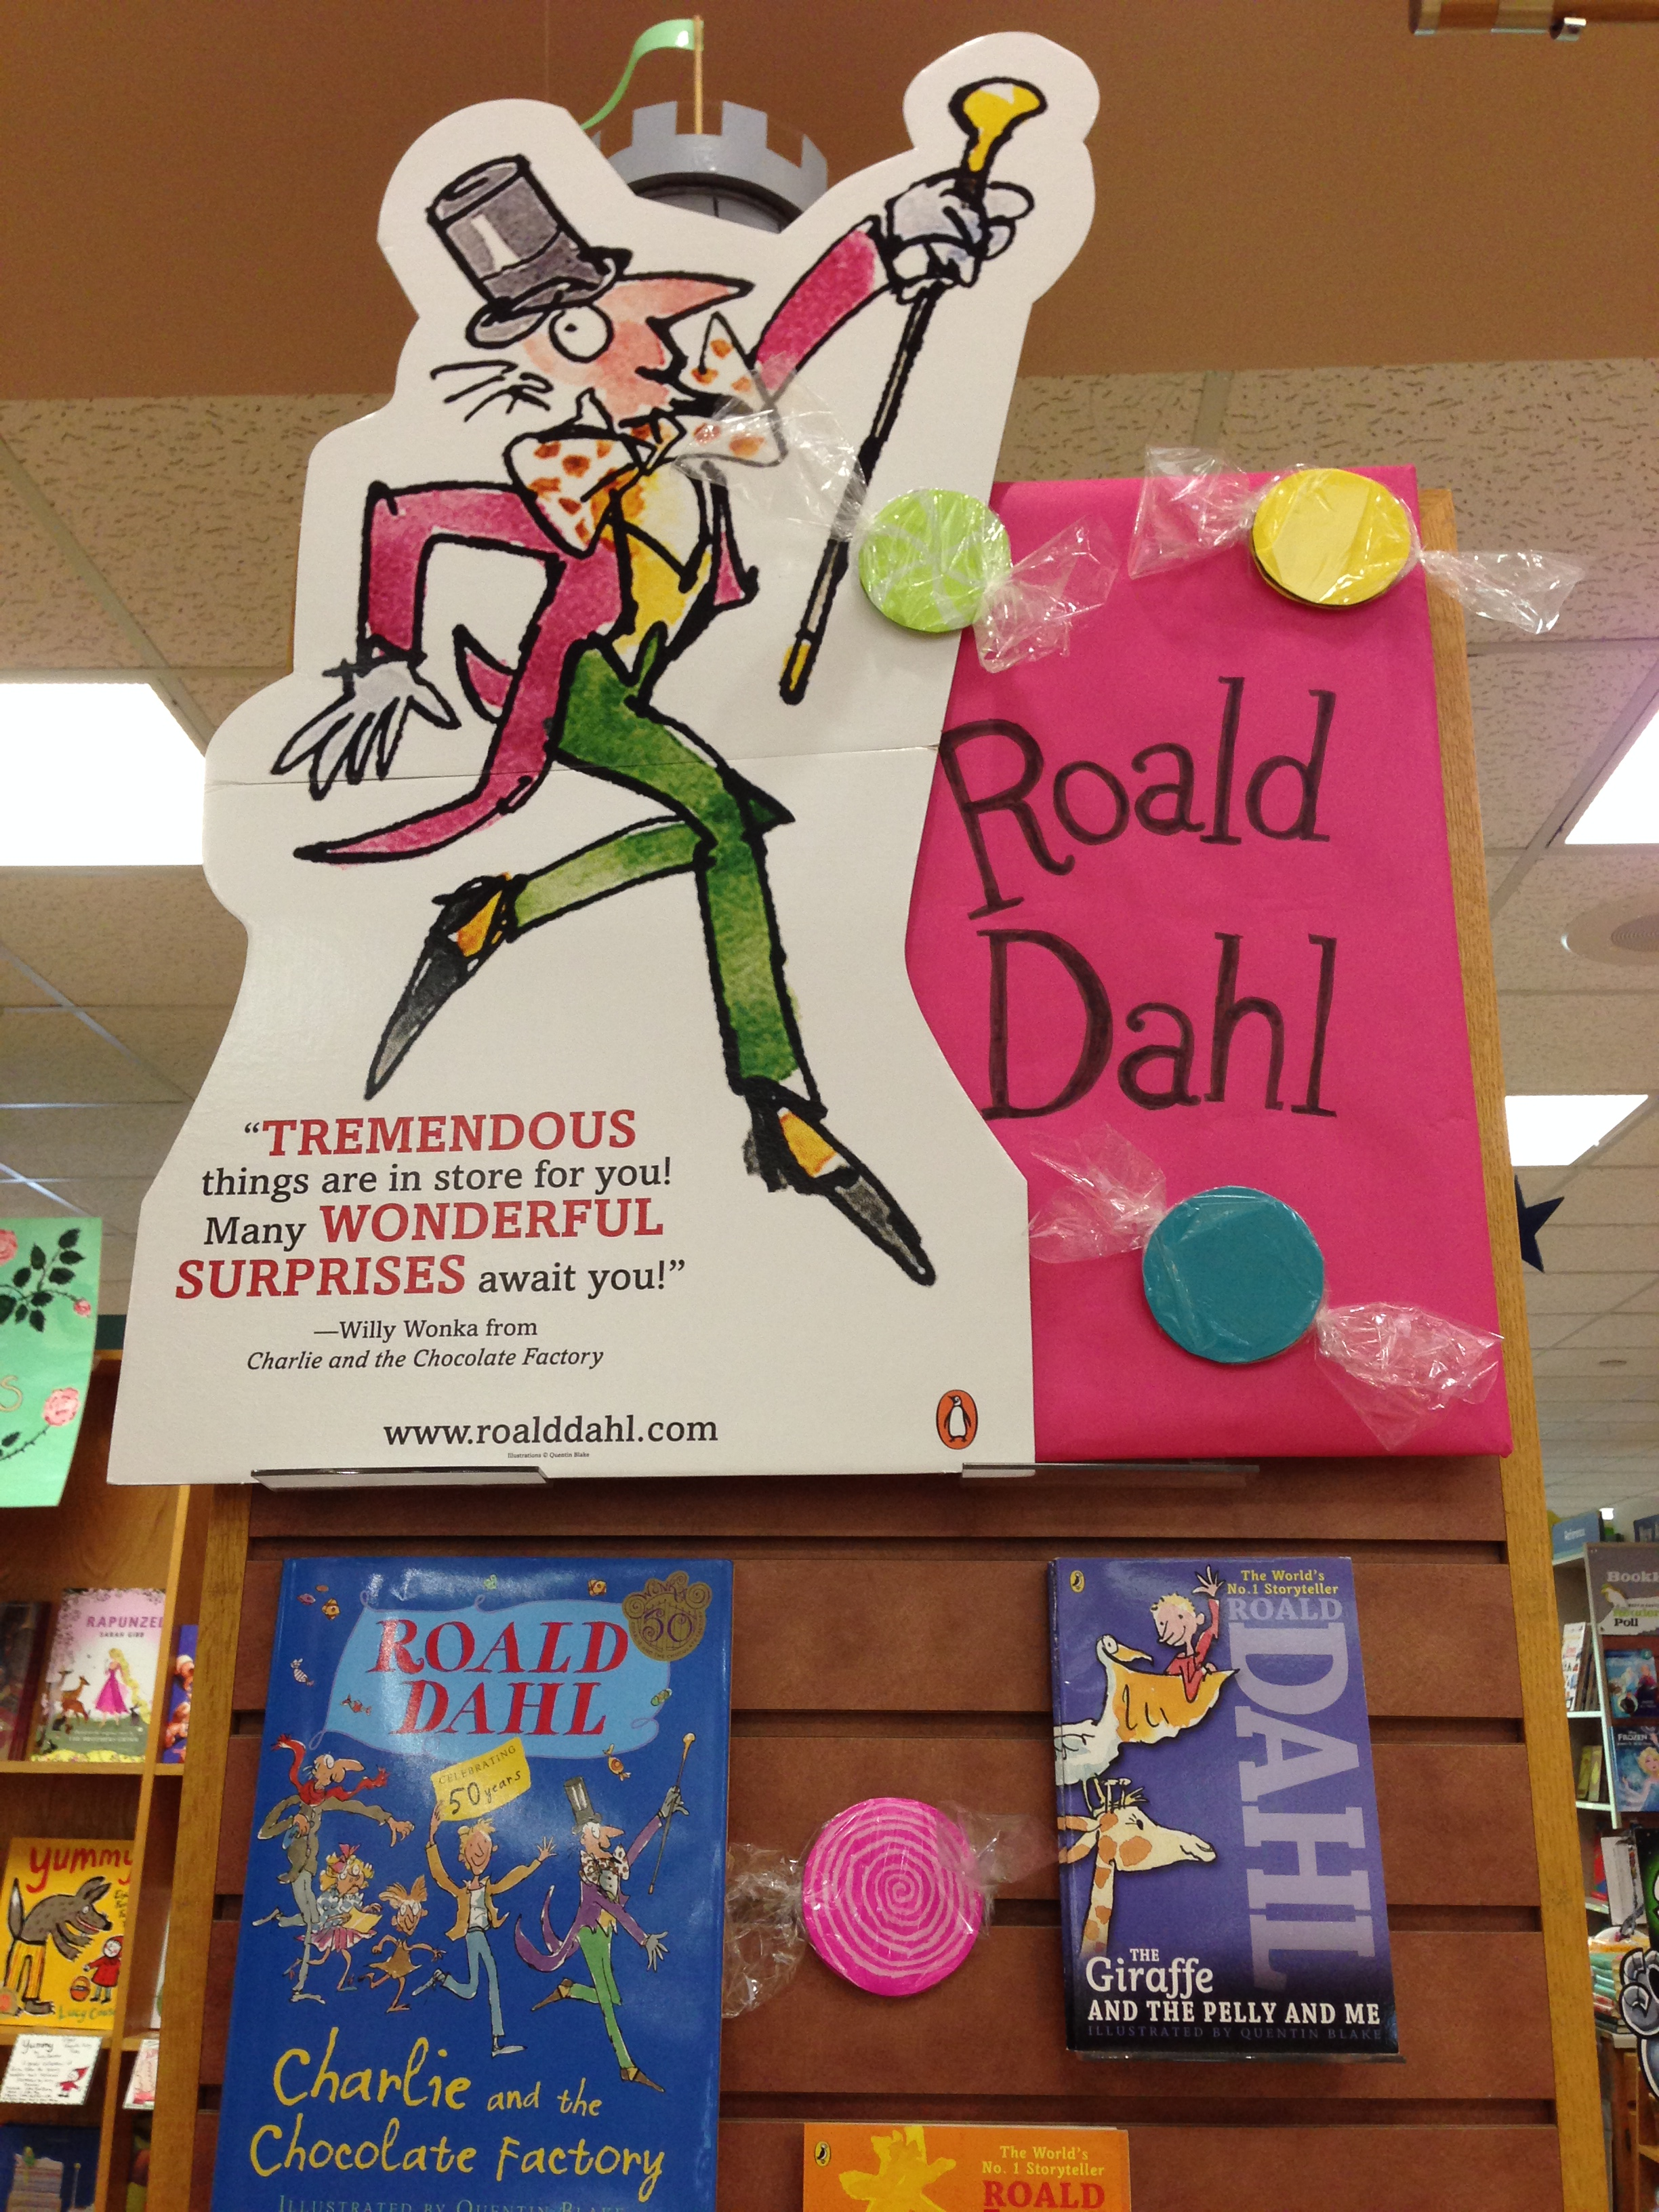 scrumdiddlyumptious celebrating roald dahl bookpeople s blog roald dahl endcap close up